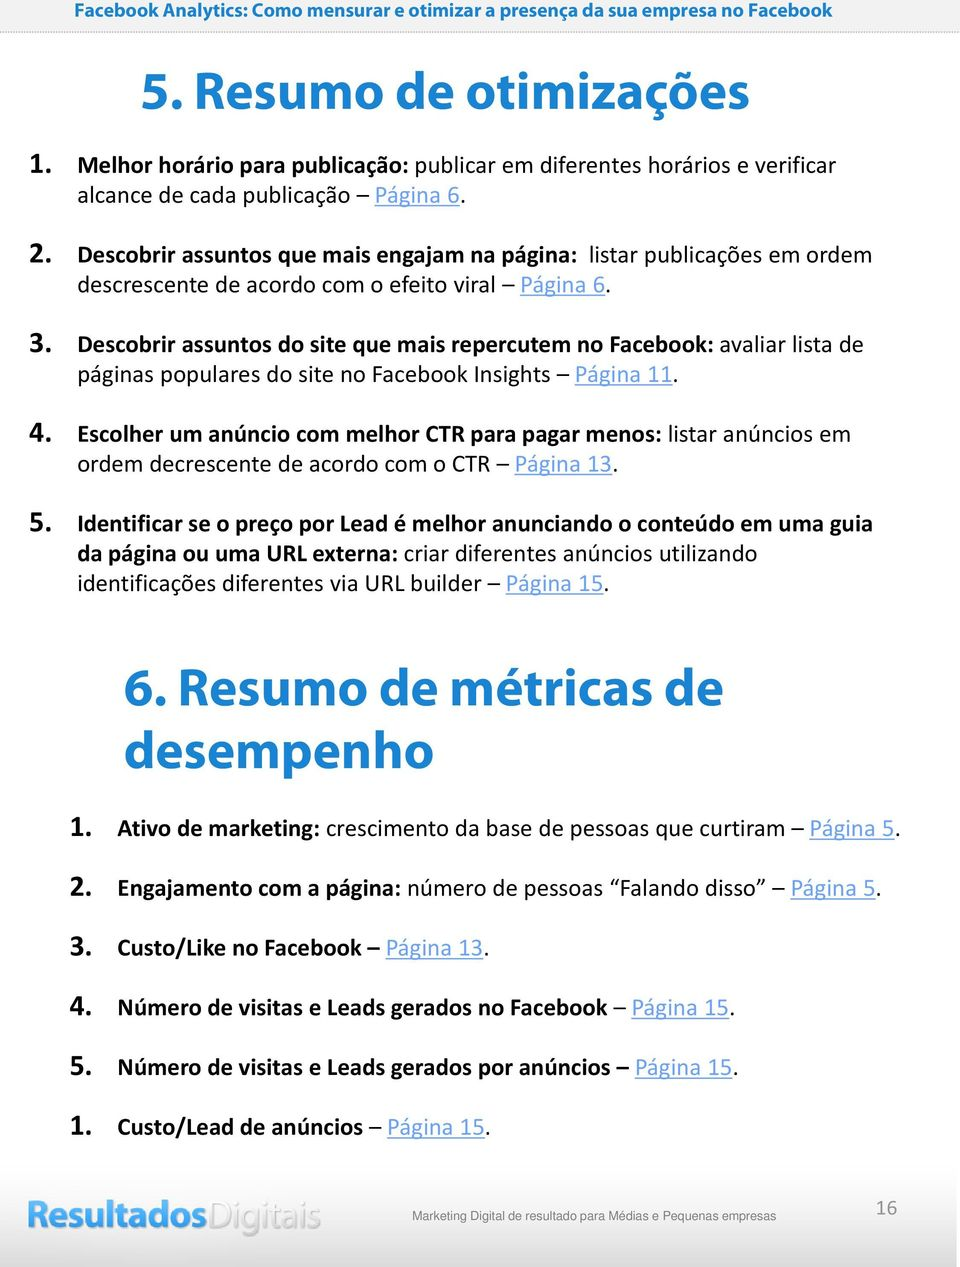 Descobrir assuntos do site que mais repercutem no Facebook: avaliar lista de páginas populares do site no Facebook Insights Página 11. 4.